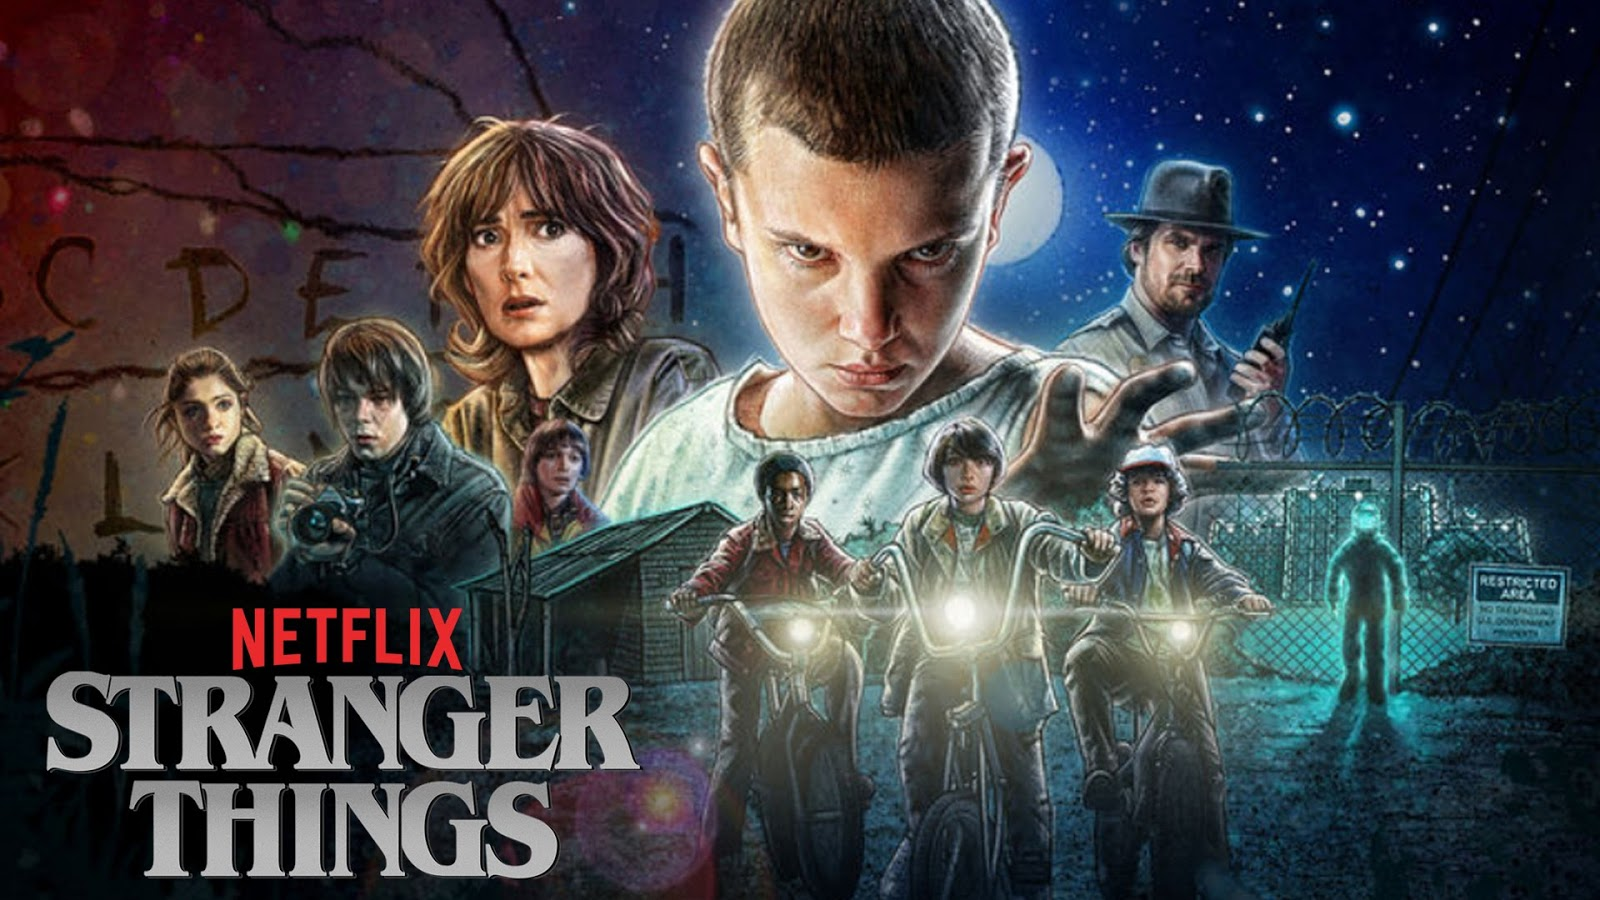 Maxinity Stranger Things Cest Le Moins Quon Puisse Dire